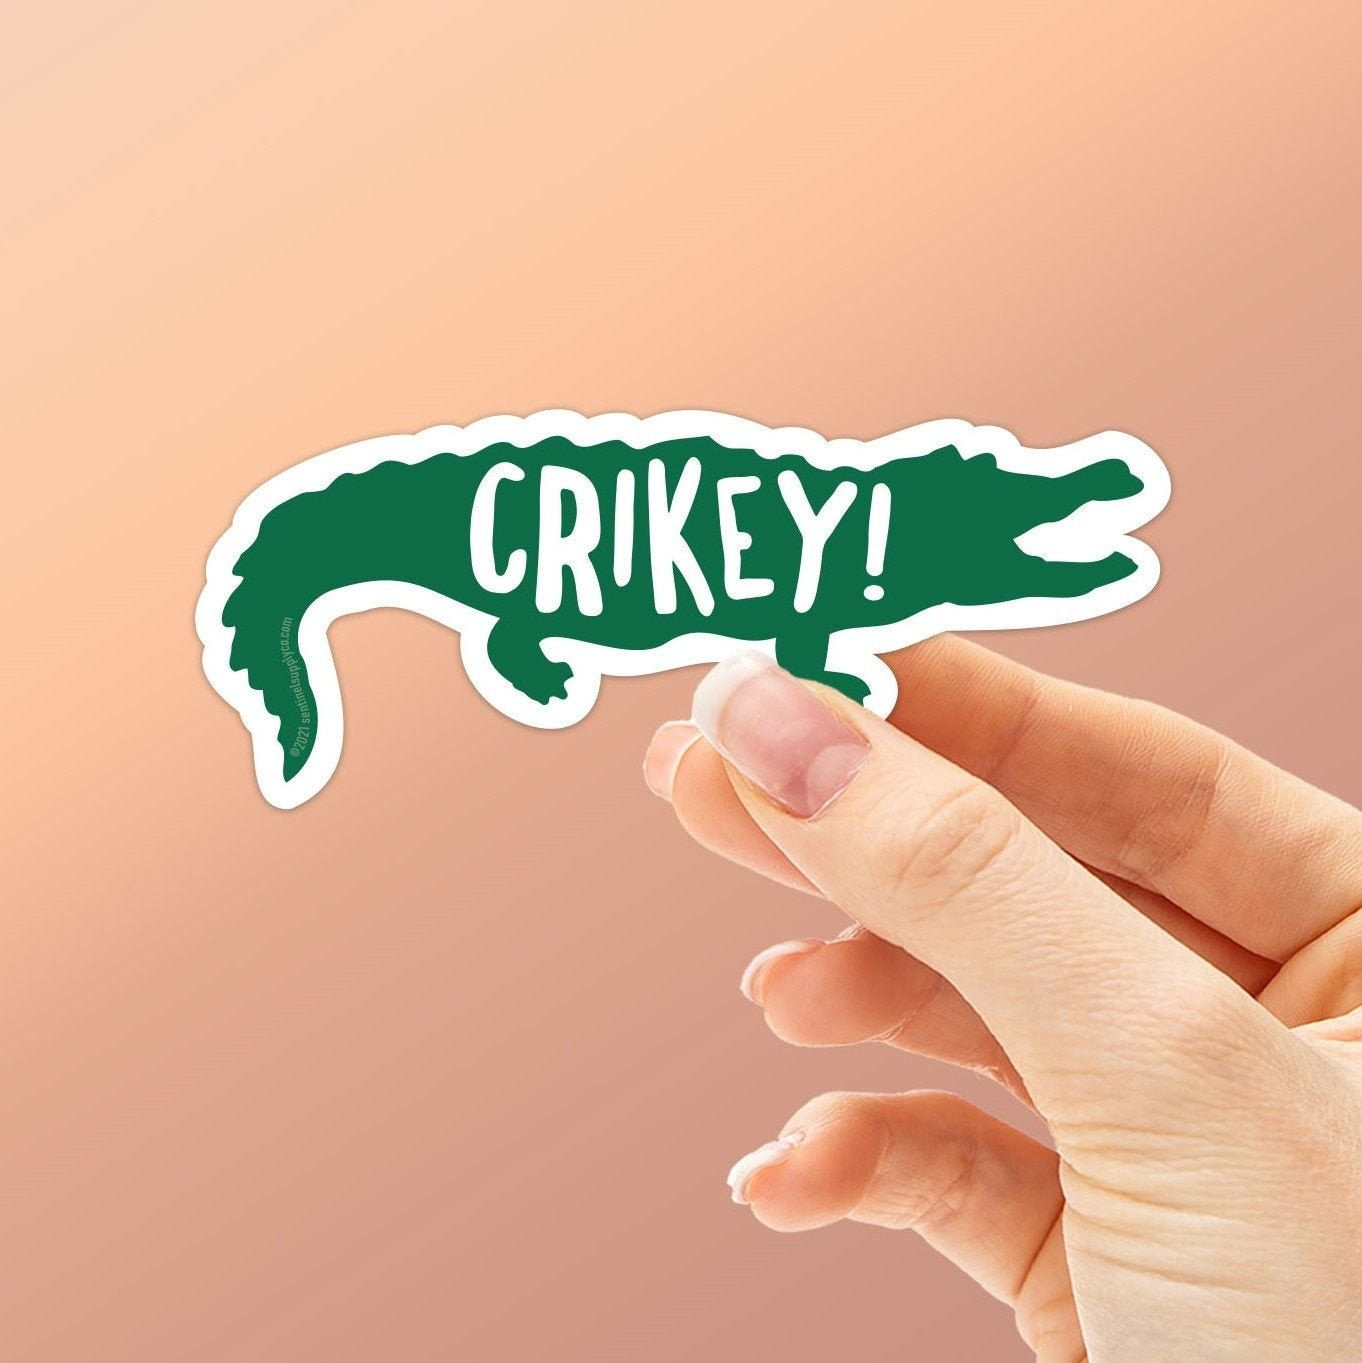 """""""Crikey! Whether you're an Aussie, an Australian tourist, or a fan of the old Crocodile Hunter TV series with Steve Irwin, you'll recognize this quintessential Australian slang expression of surprise. This cute crocodile sticker is perfect for all those who love reptiles, the Australia Zoo, Crocodile Dundee quotes, or all 3. Stick this waterproof vinyl decal on your Hydroflask, thermos, cooler, or laptop. It's a smaller size, perfect for filling in the empty spaces between stickers! ➳ Dimensions"""